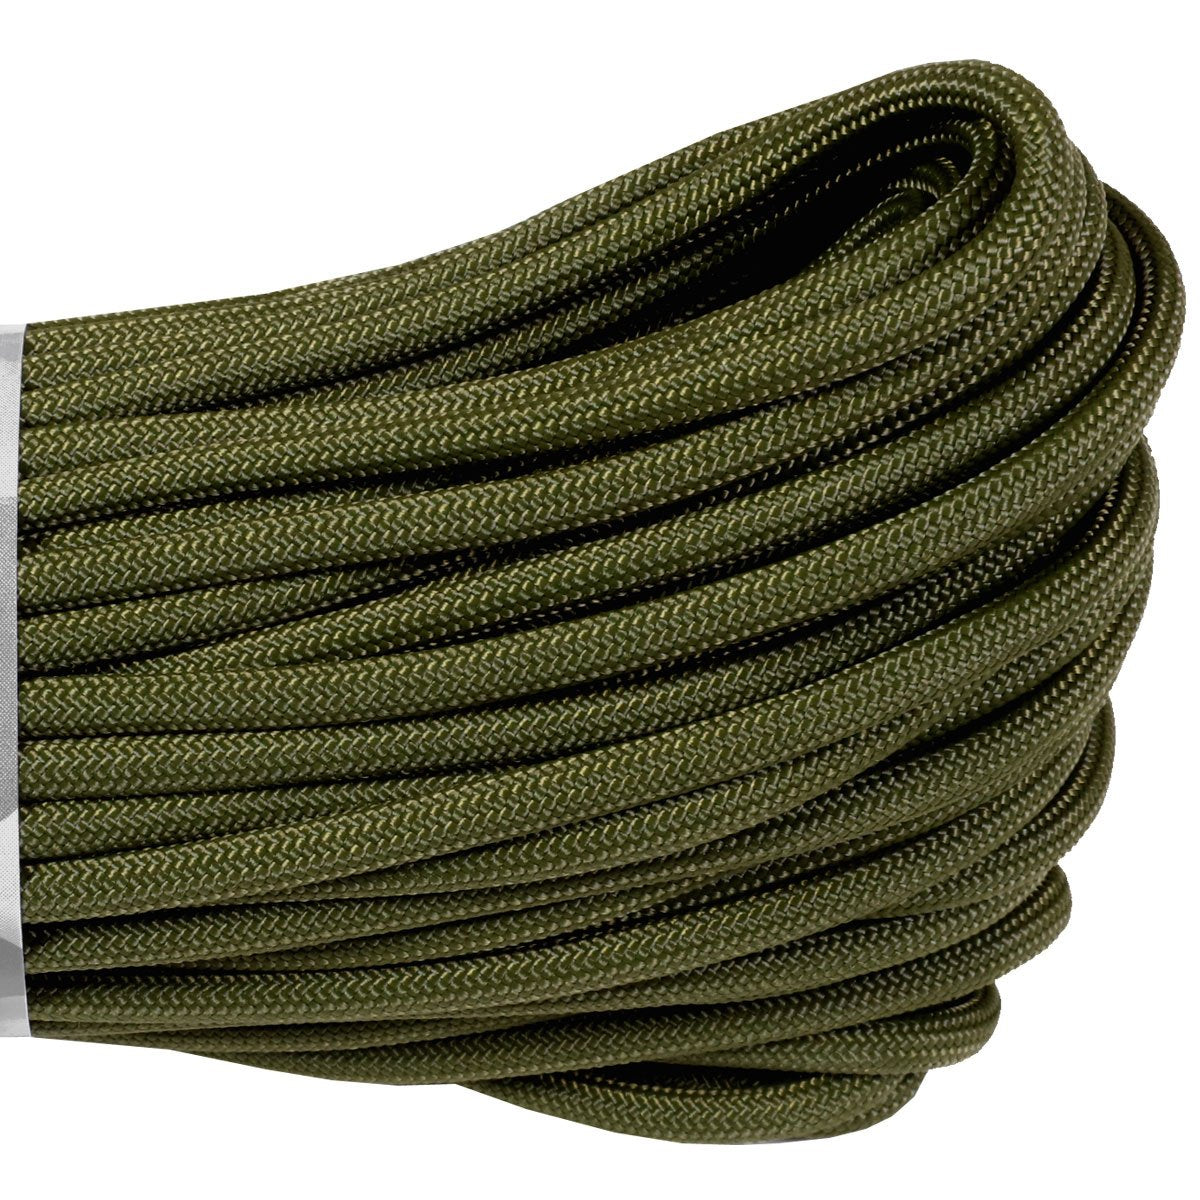 550 Type III Paracord Made in USA - 100 ft - Olive Drab